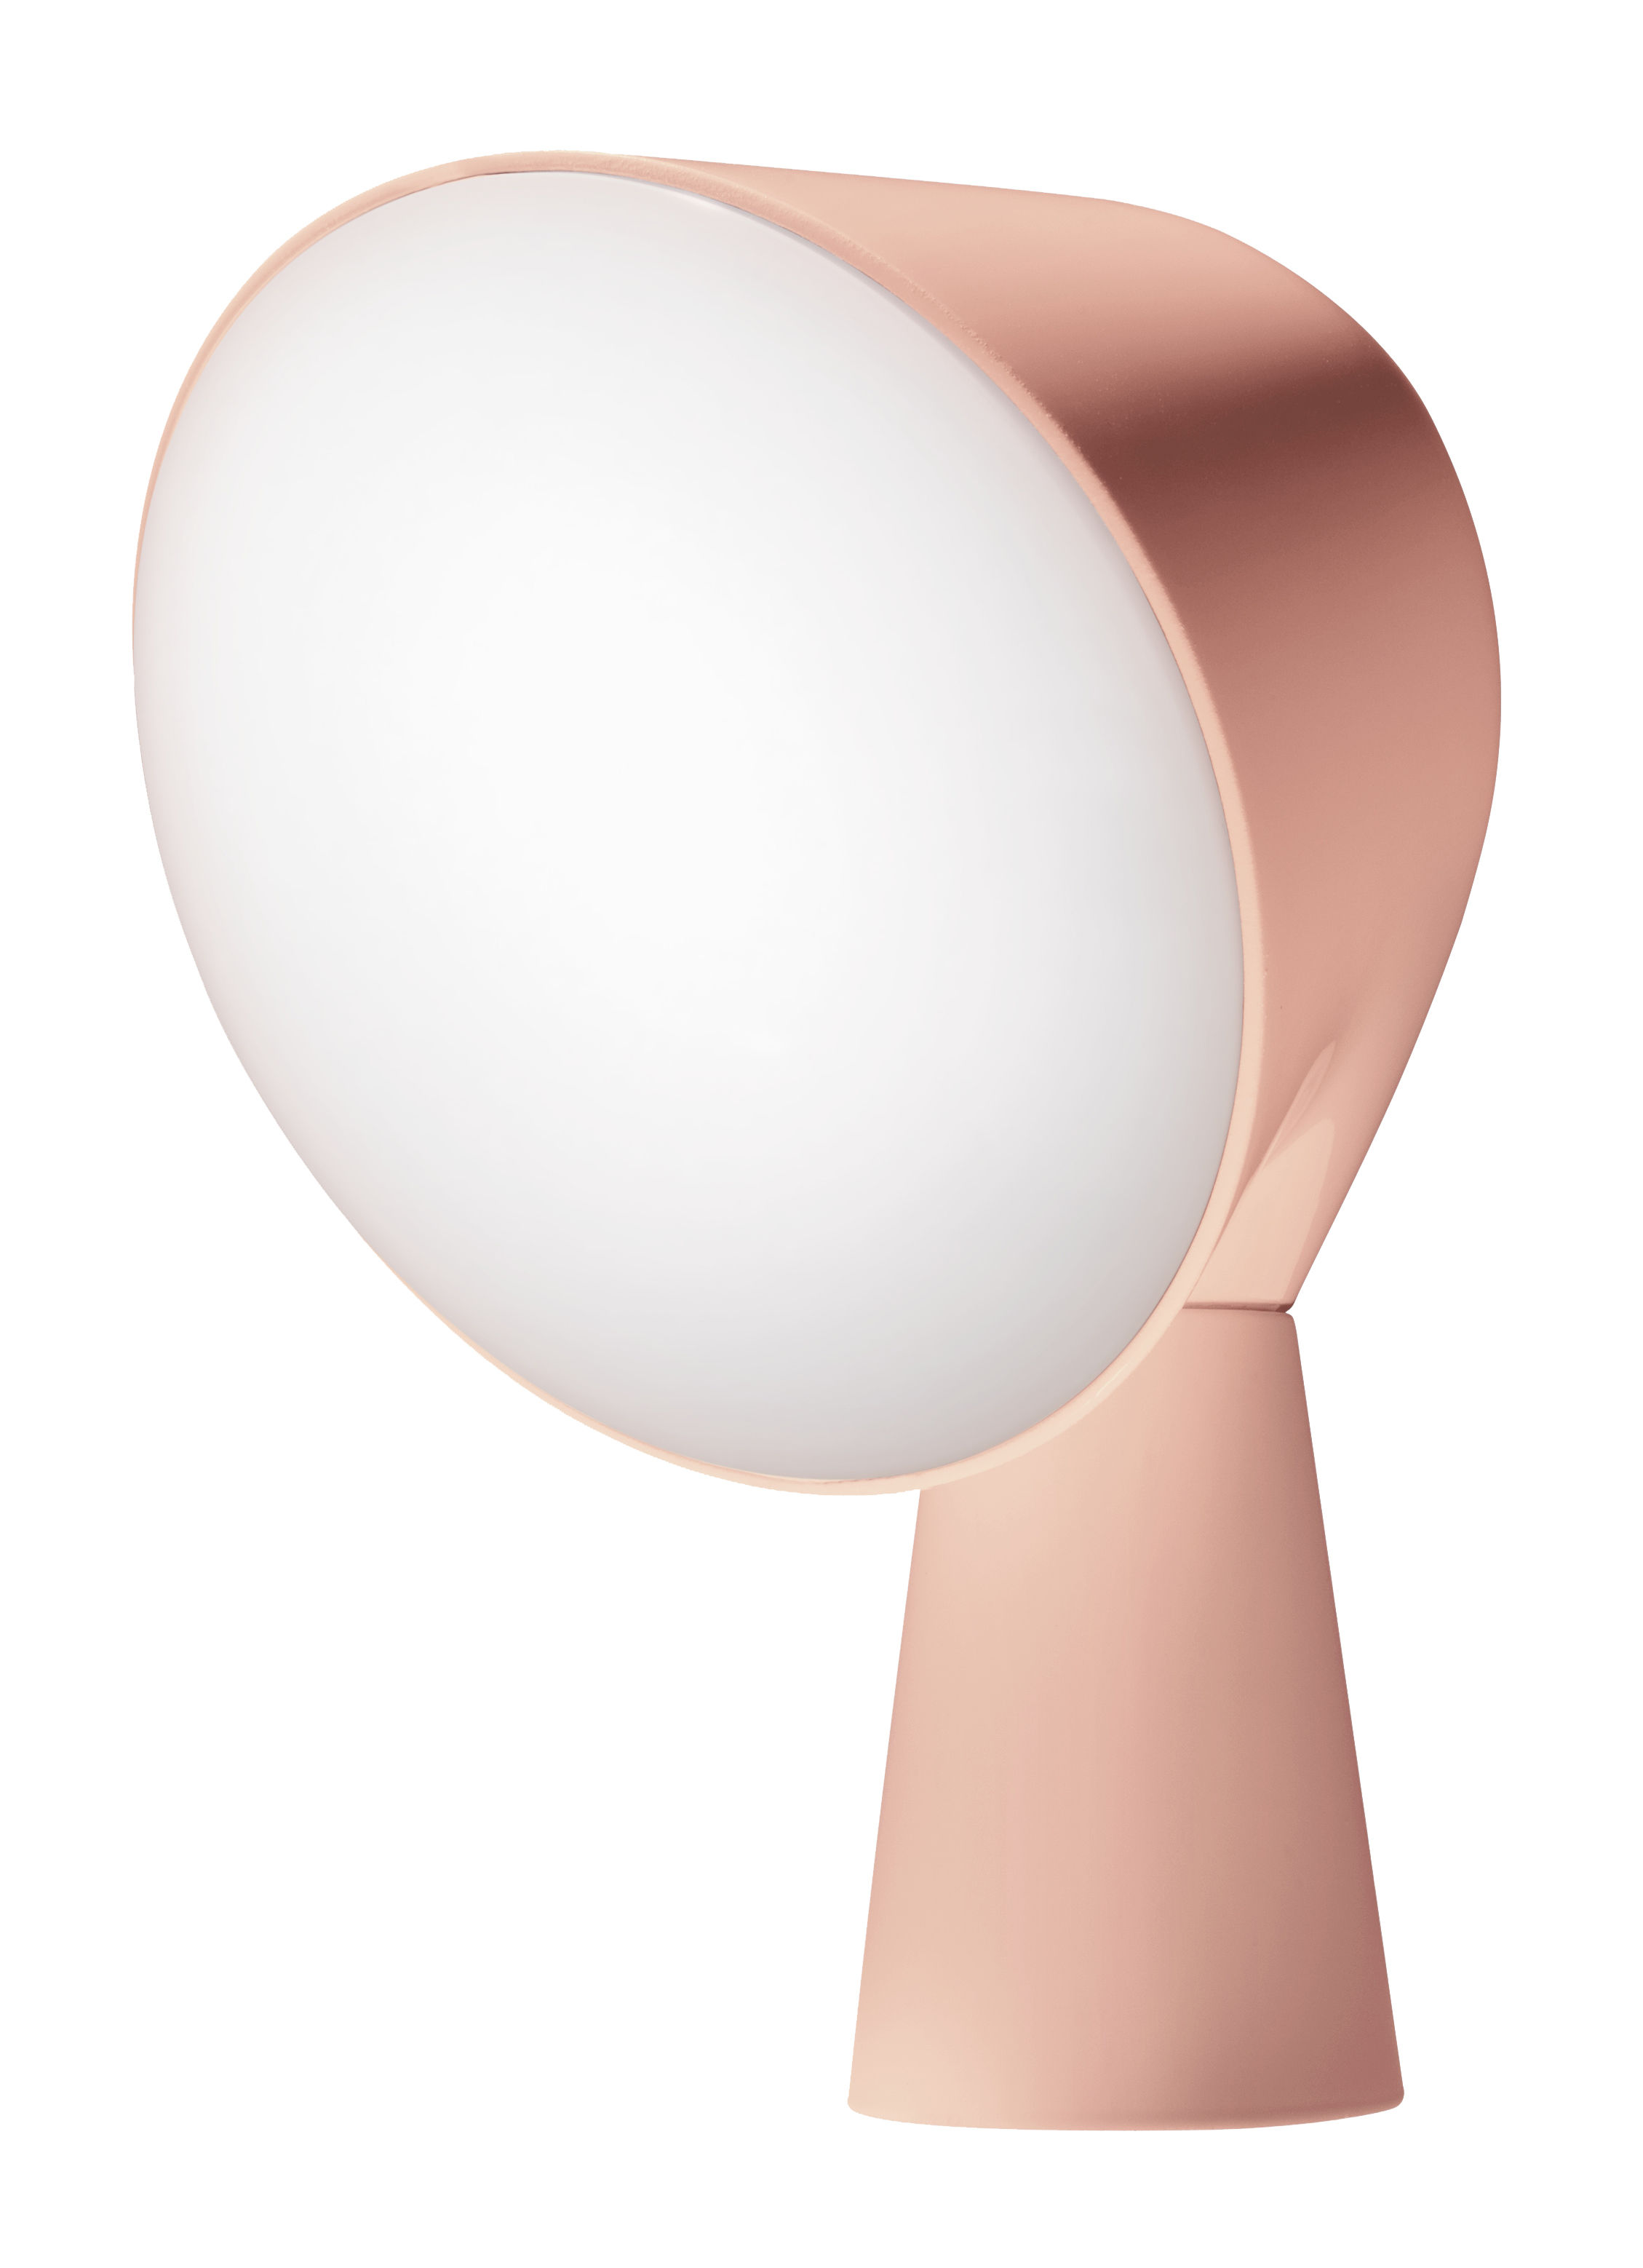 Lighting - Table Lamps - Binic Table lamp by Foscarini - Pink - ABS, Polycarbonate